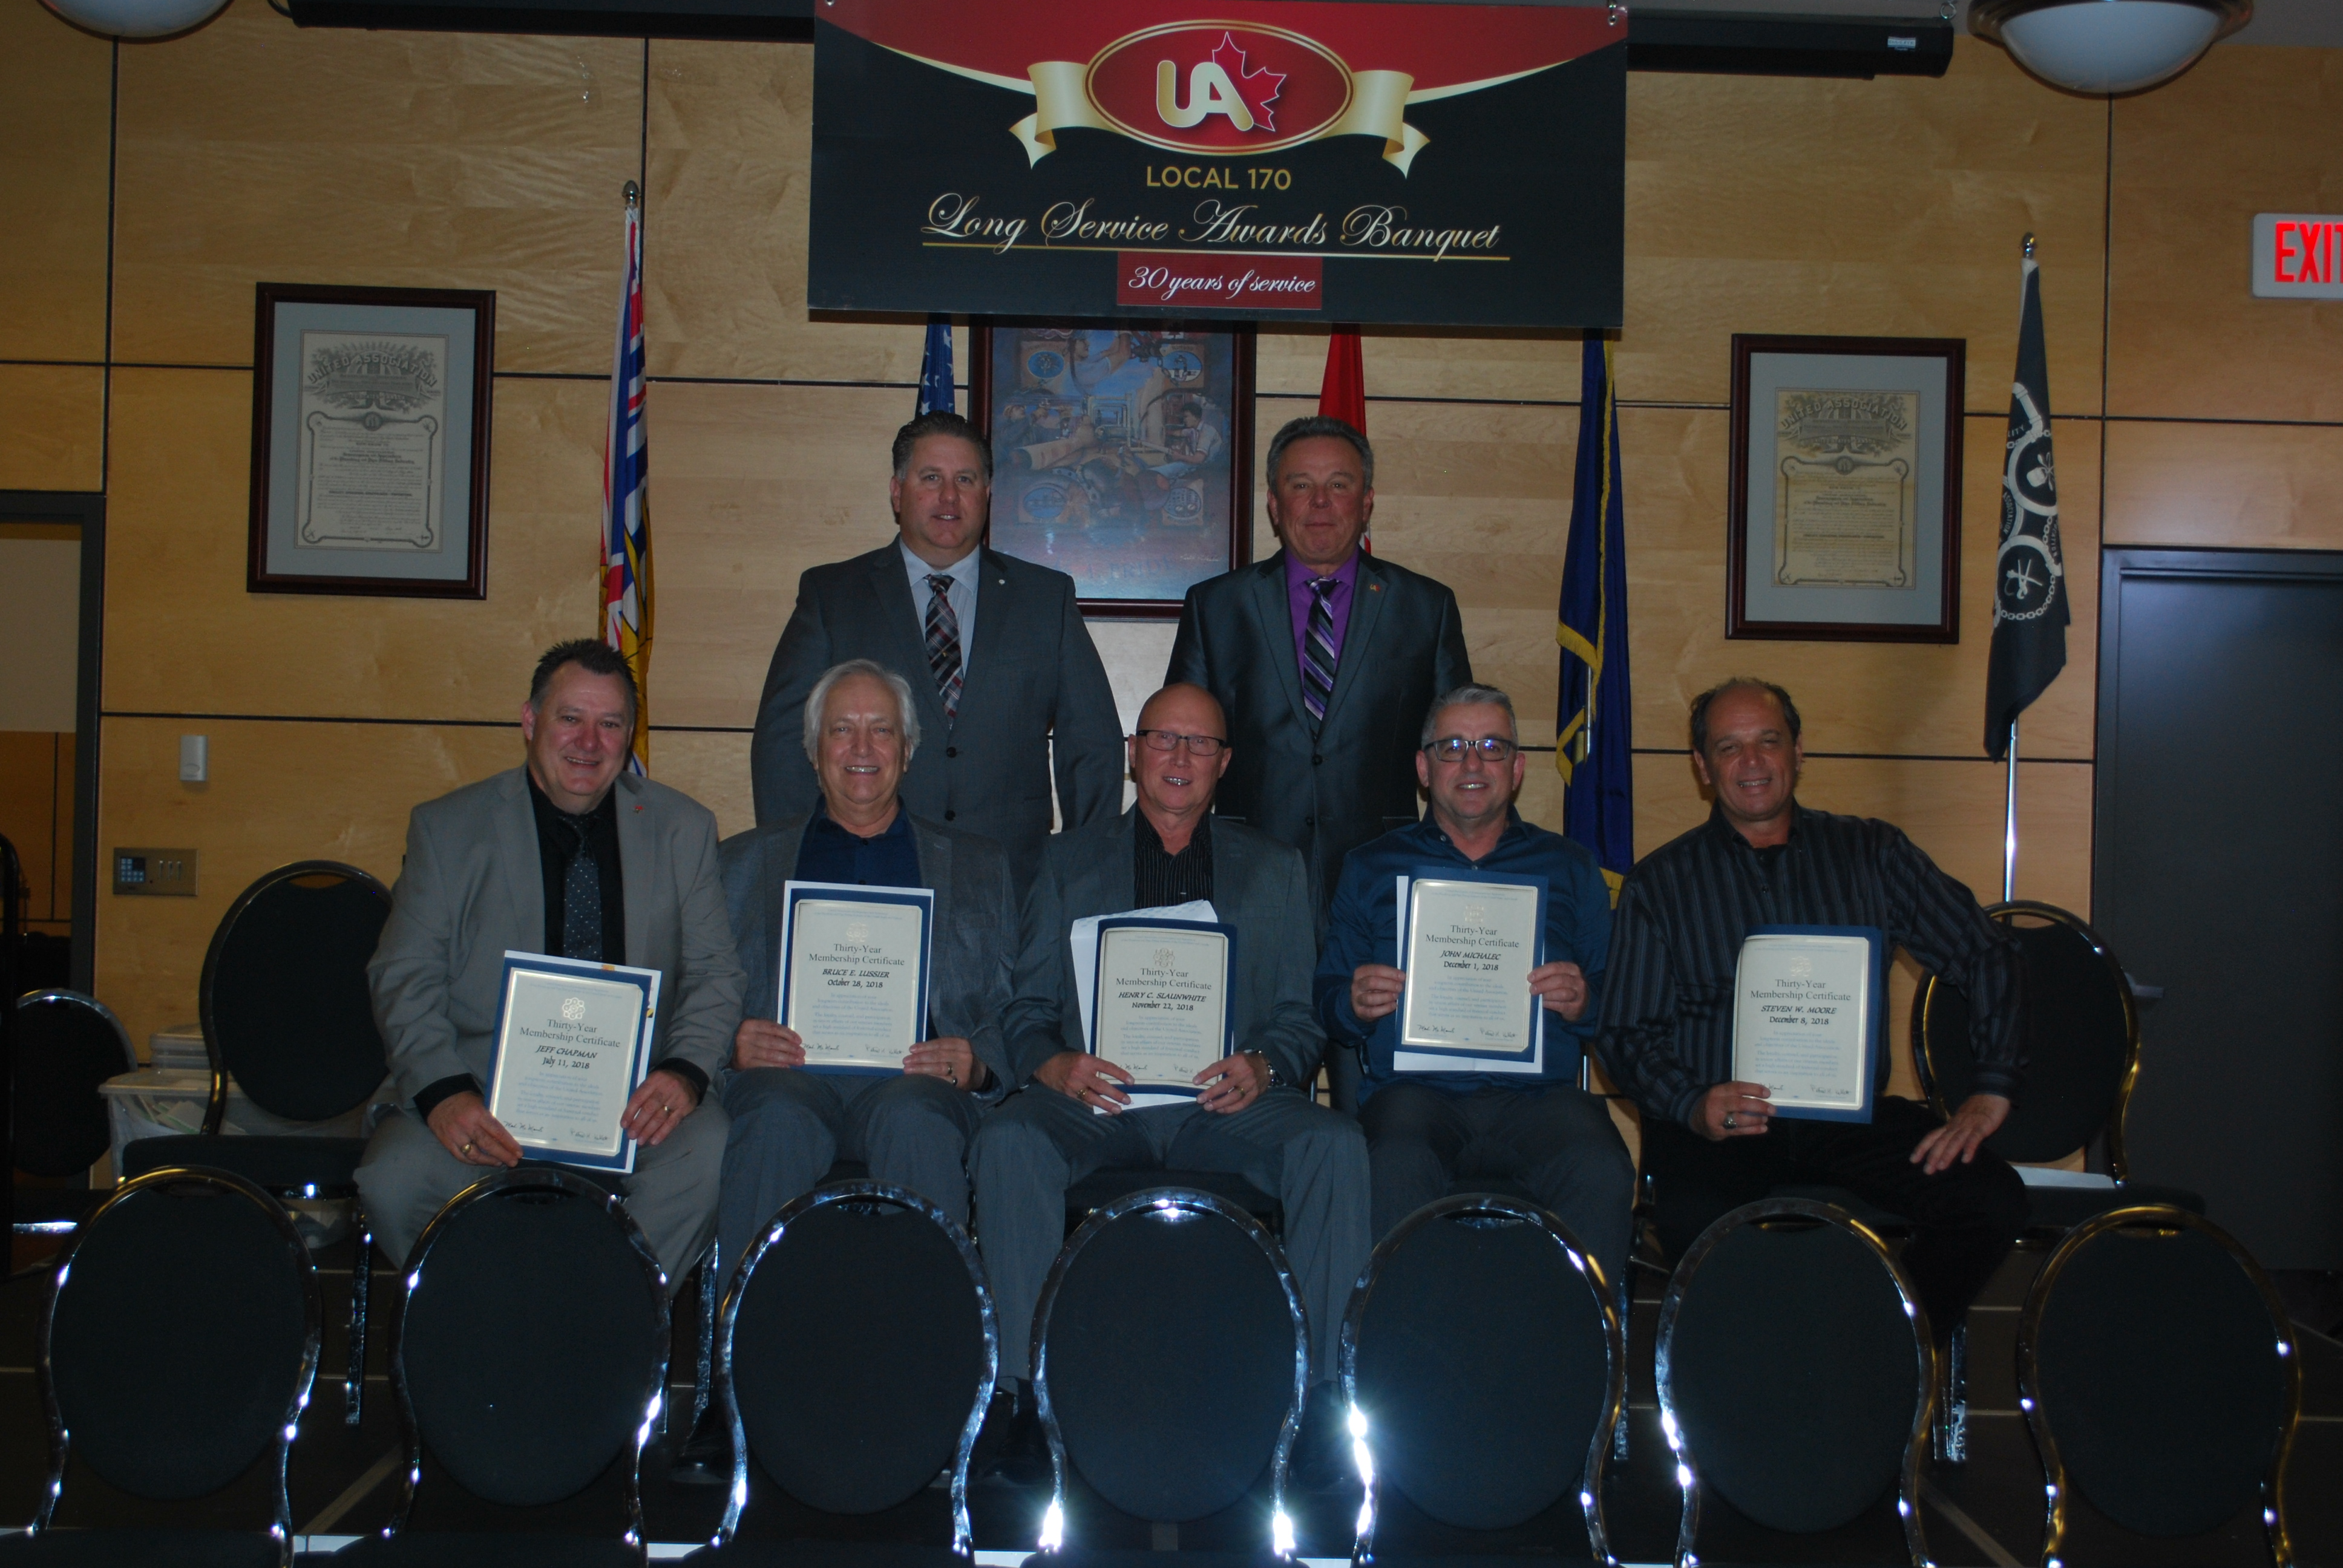 Congratulations to our Long Service Members